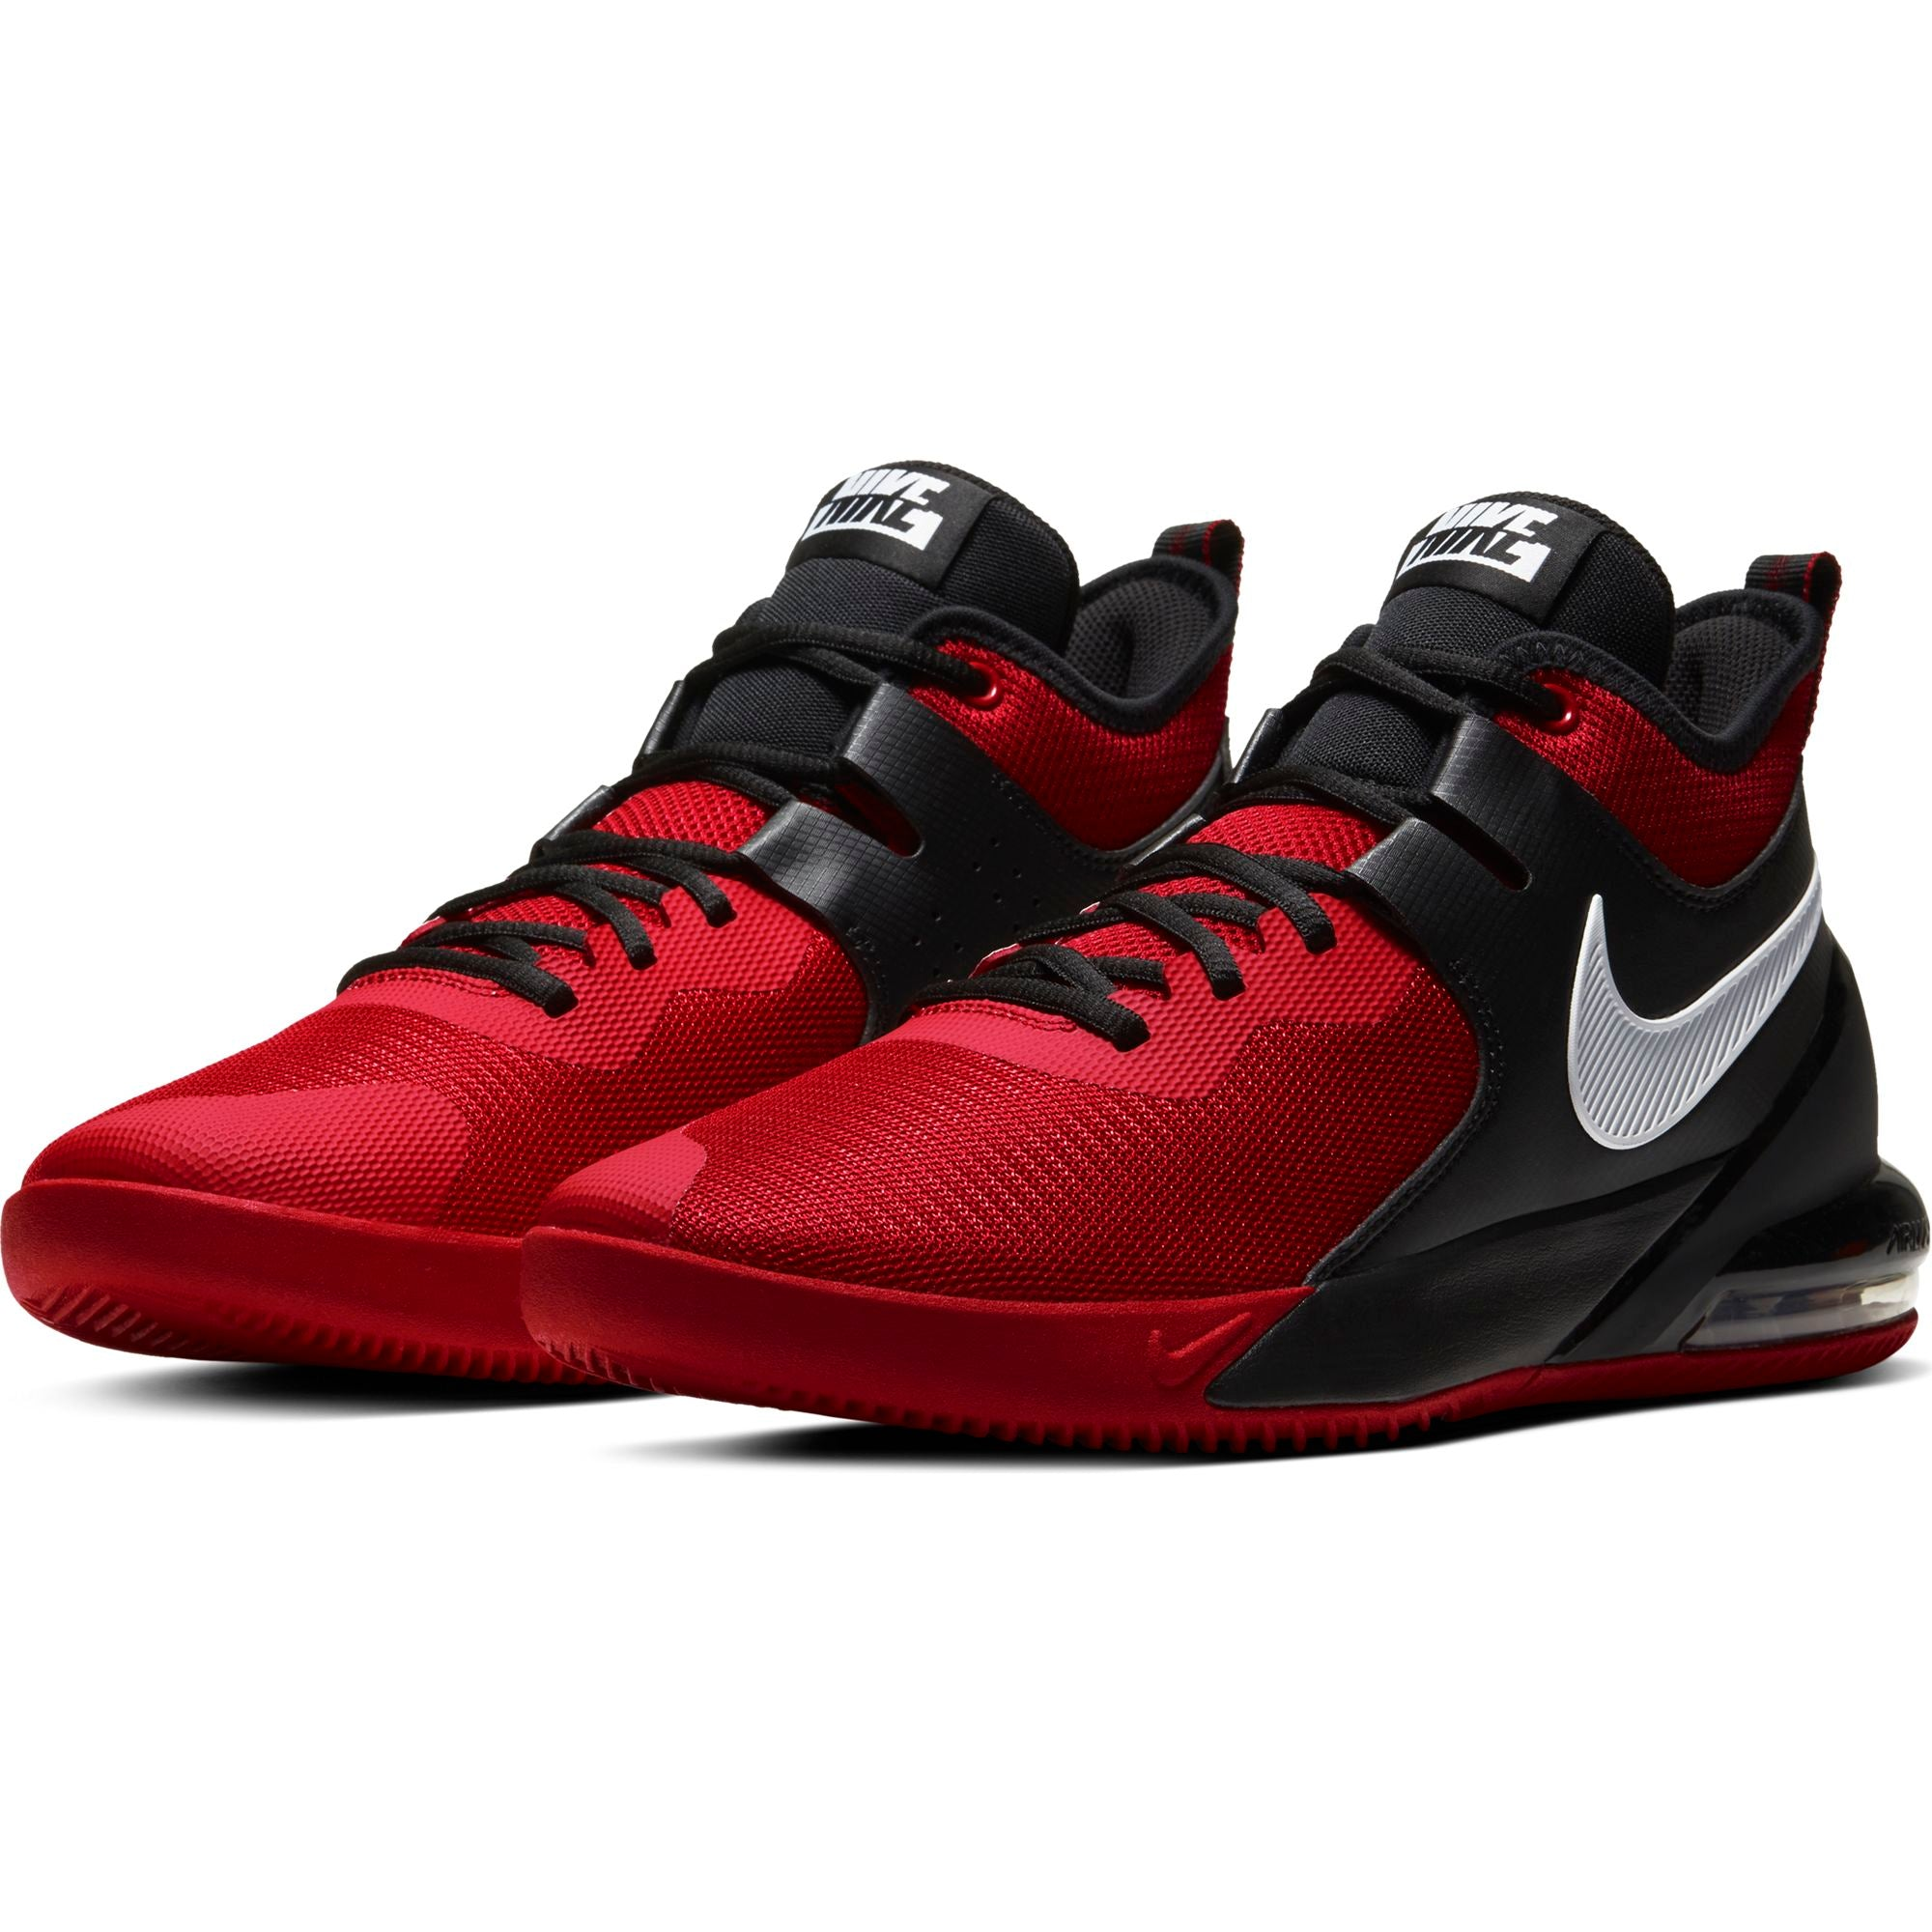 Nike Basketball Air Max Impact Basketball Boot/Shoe - University Red/White/Black